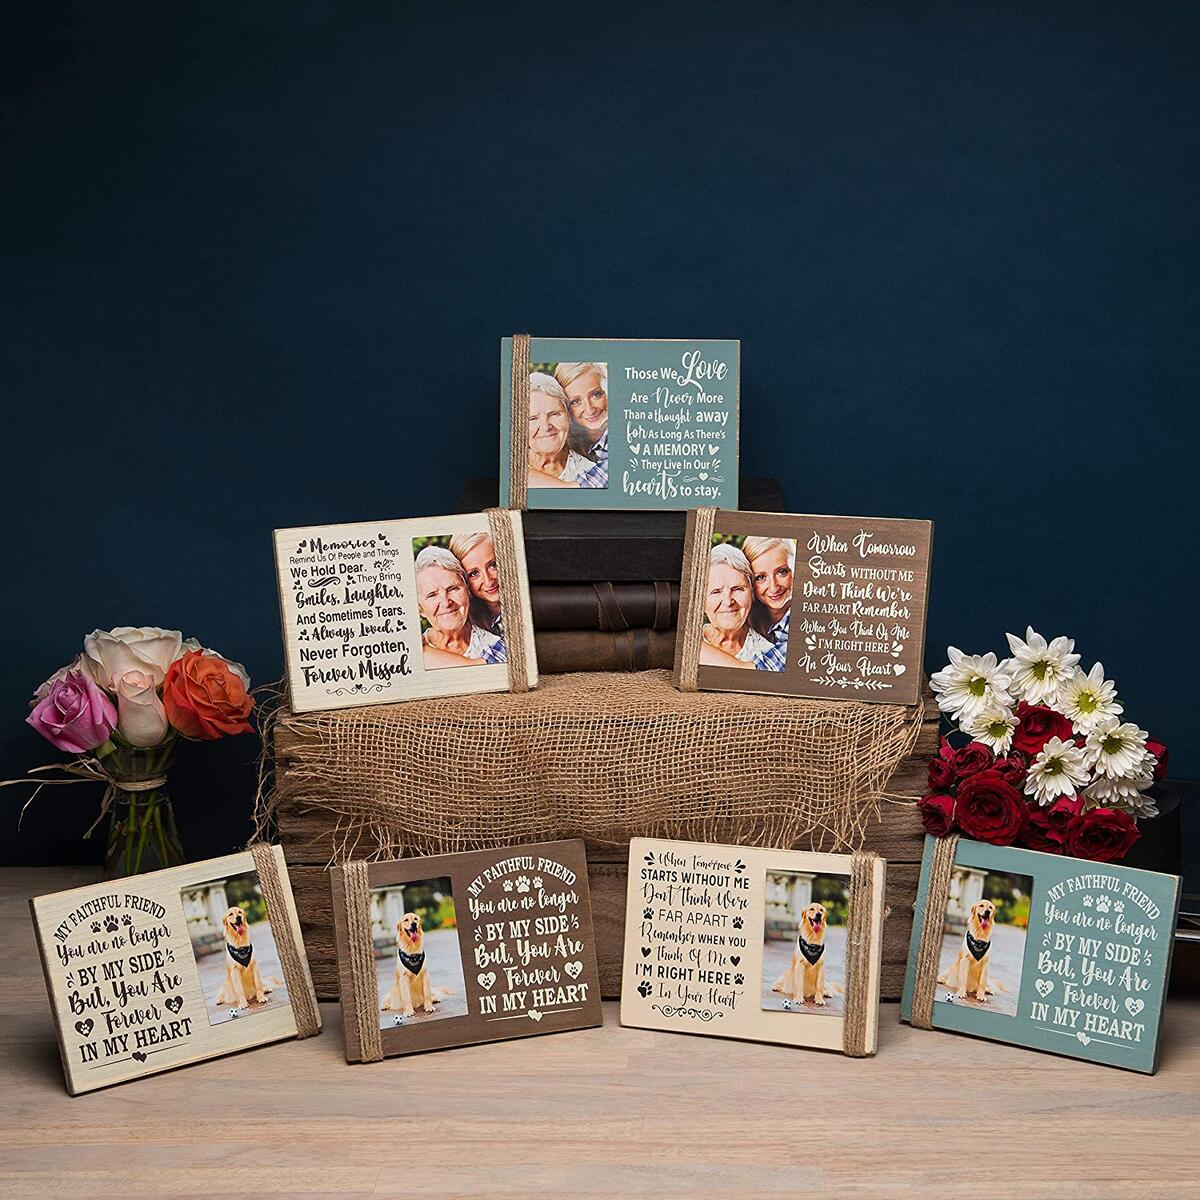 "MemoMajestic Zen 5"" x 7"" Memorial Picture Frame- Holds 3"" x 4"" Photos-Sympathy Gifts-Bereavement Gifts for Loss of a Mother, Father, or Grandparents, Husband- Loss of a Loved One, in Memory of Loved One"